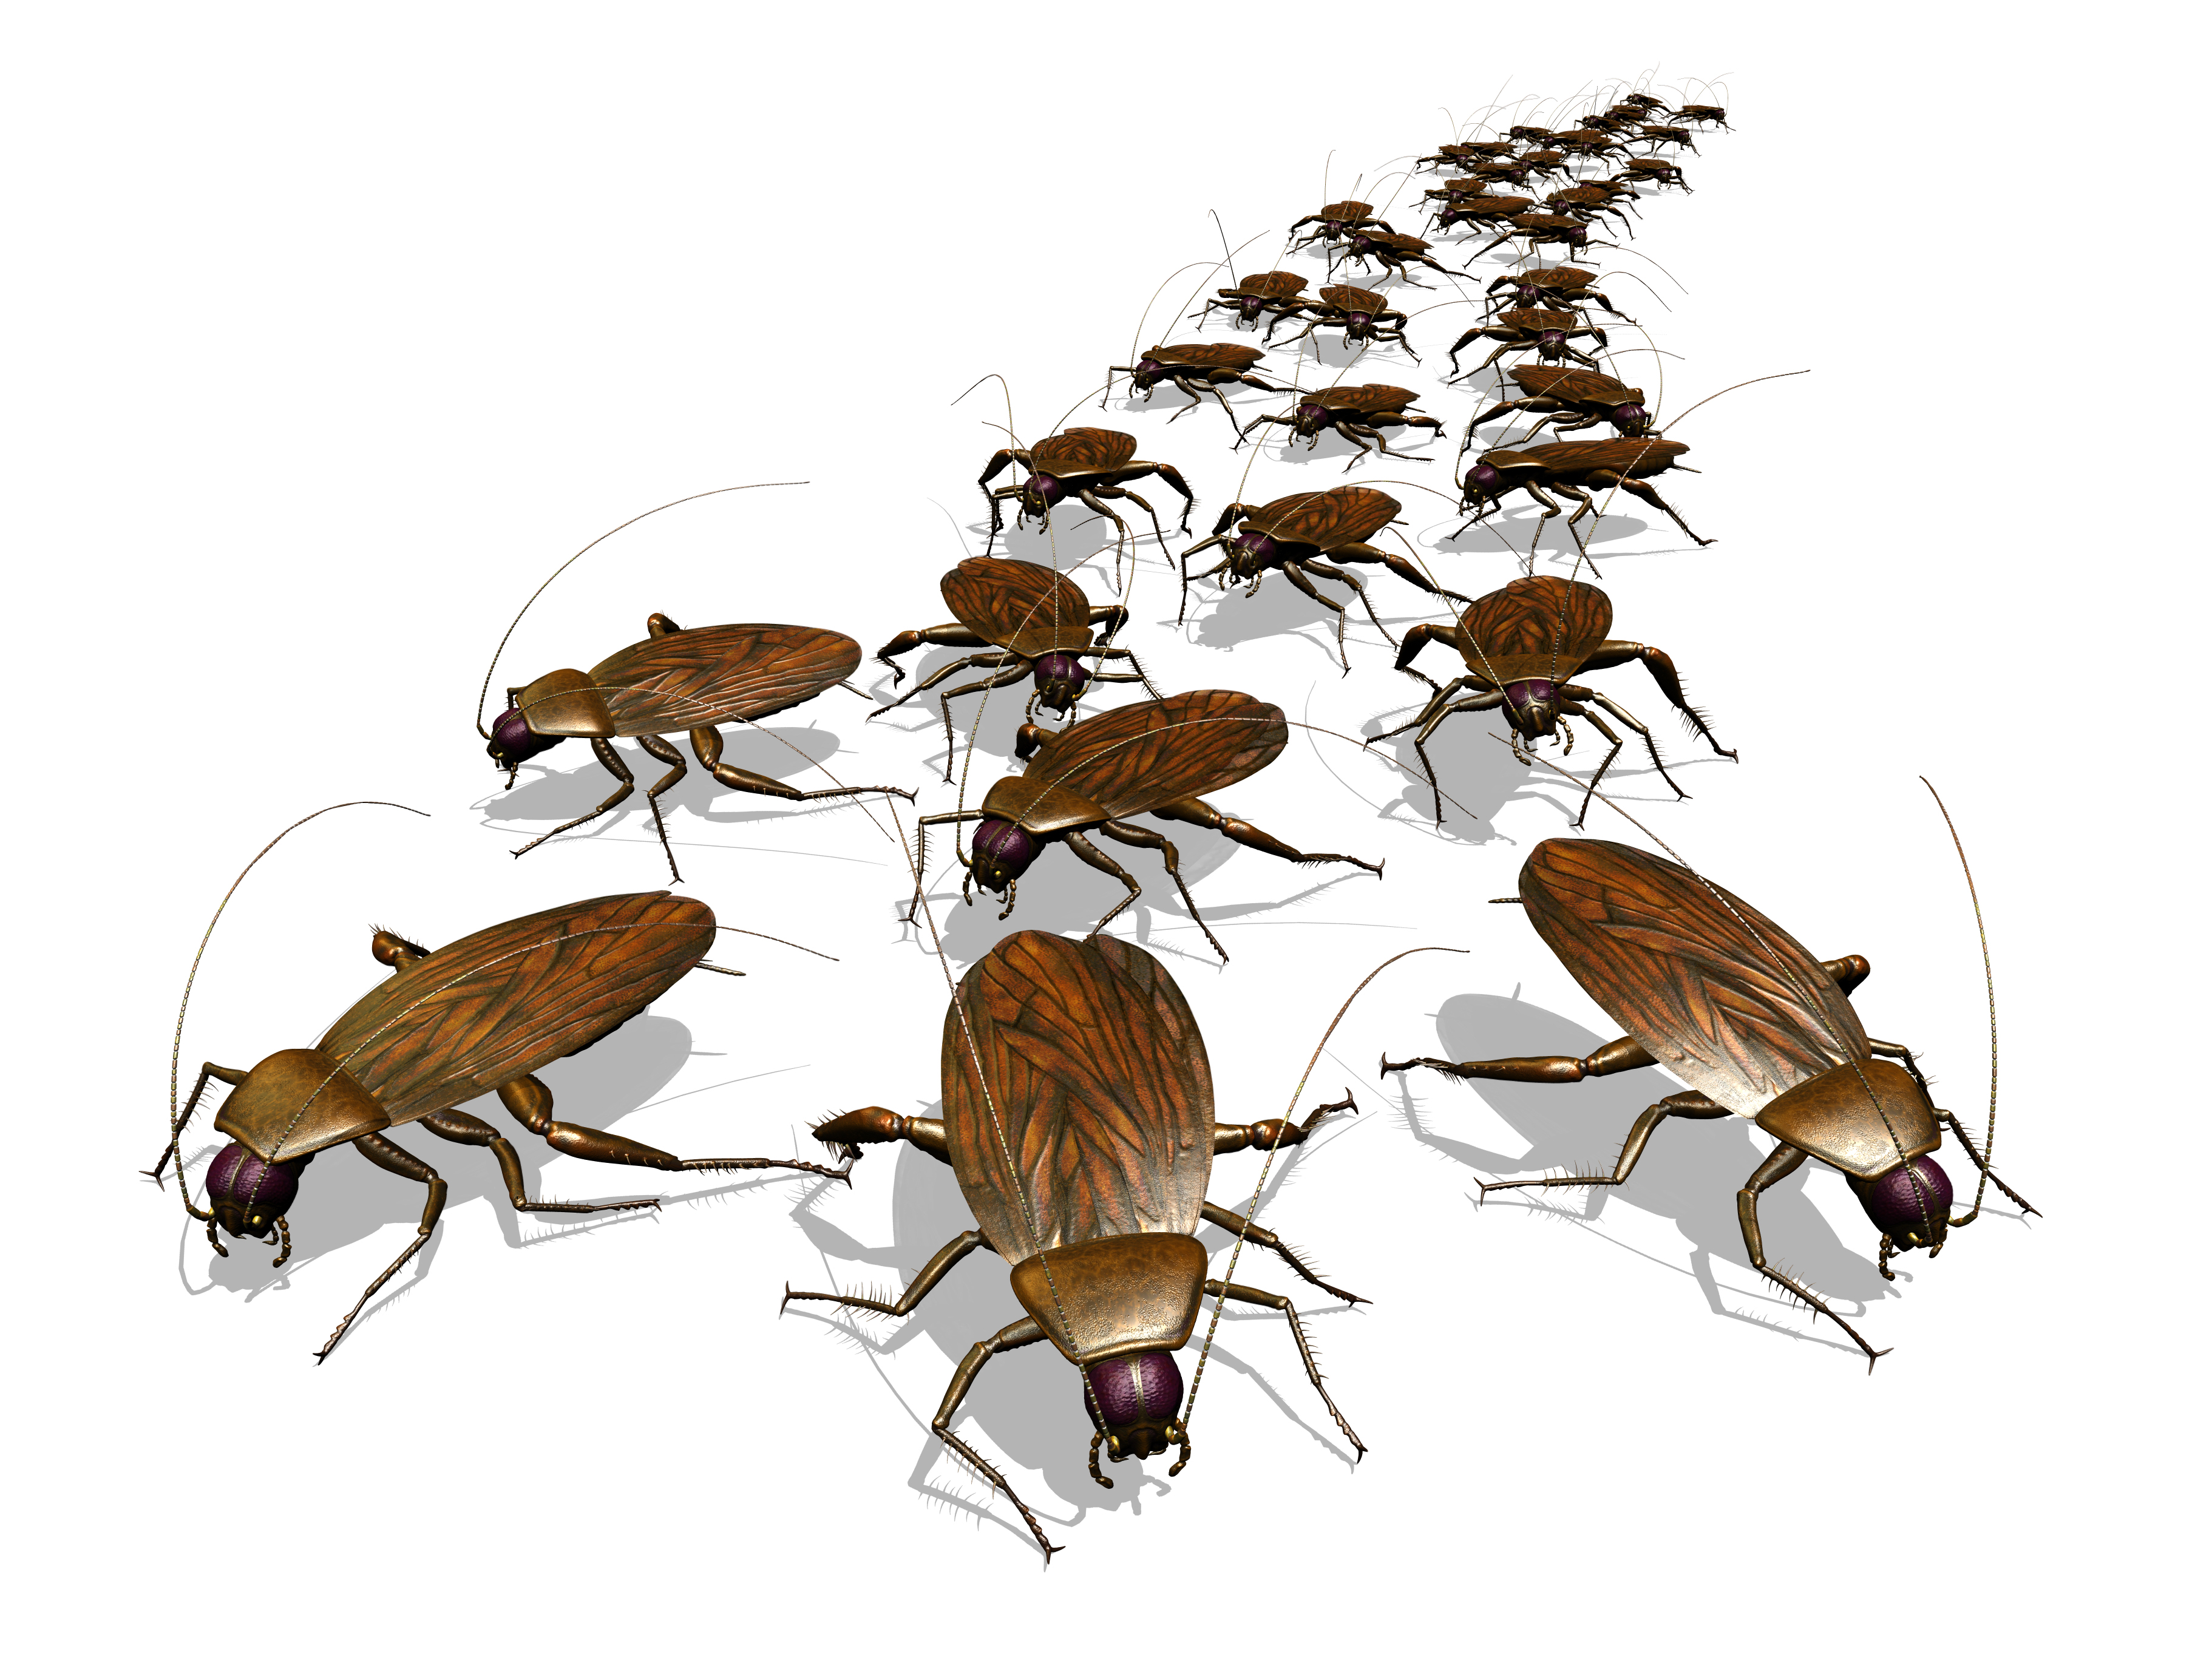 Big M Pest Control for Roaches in New Braunfels and Corpus Christi TX